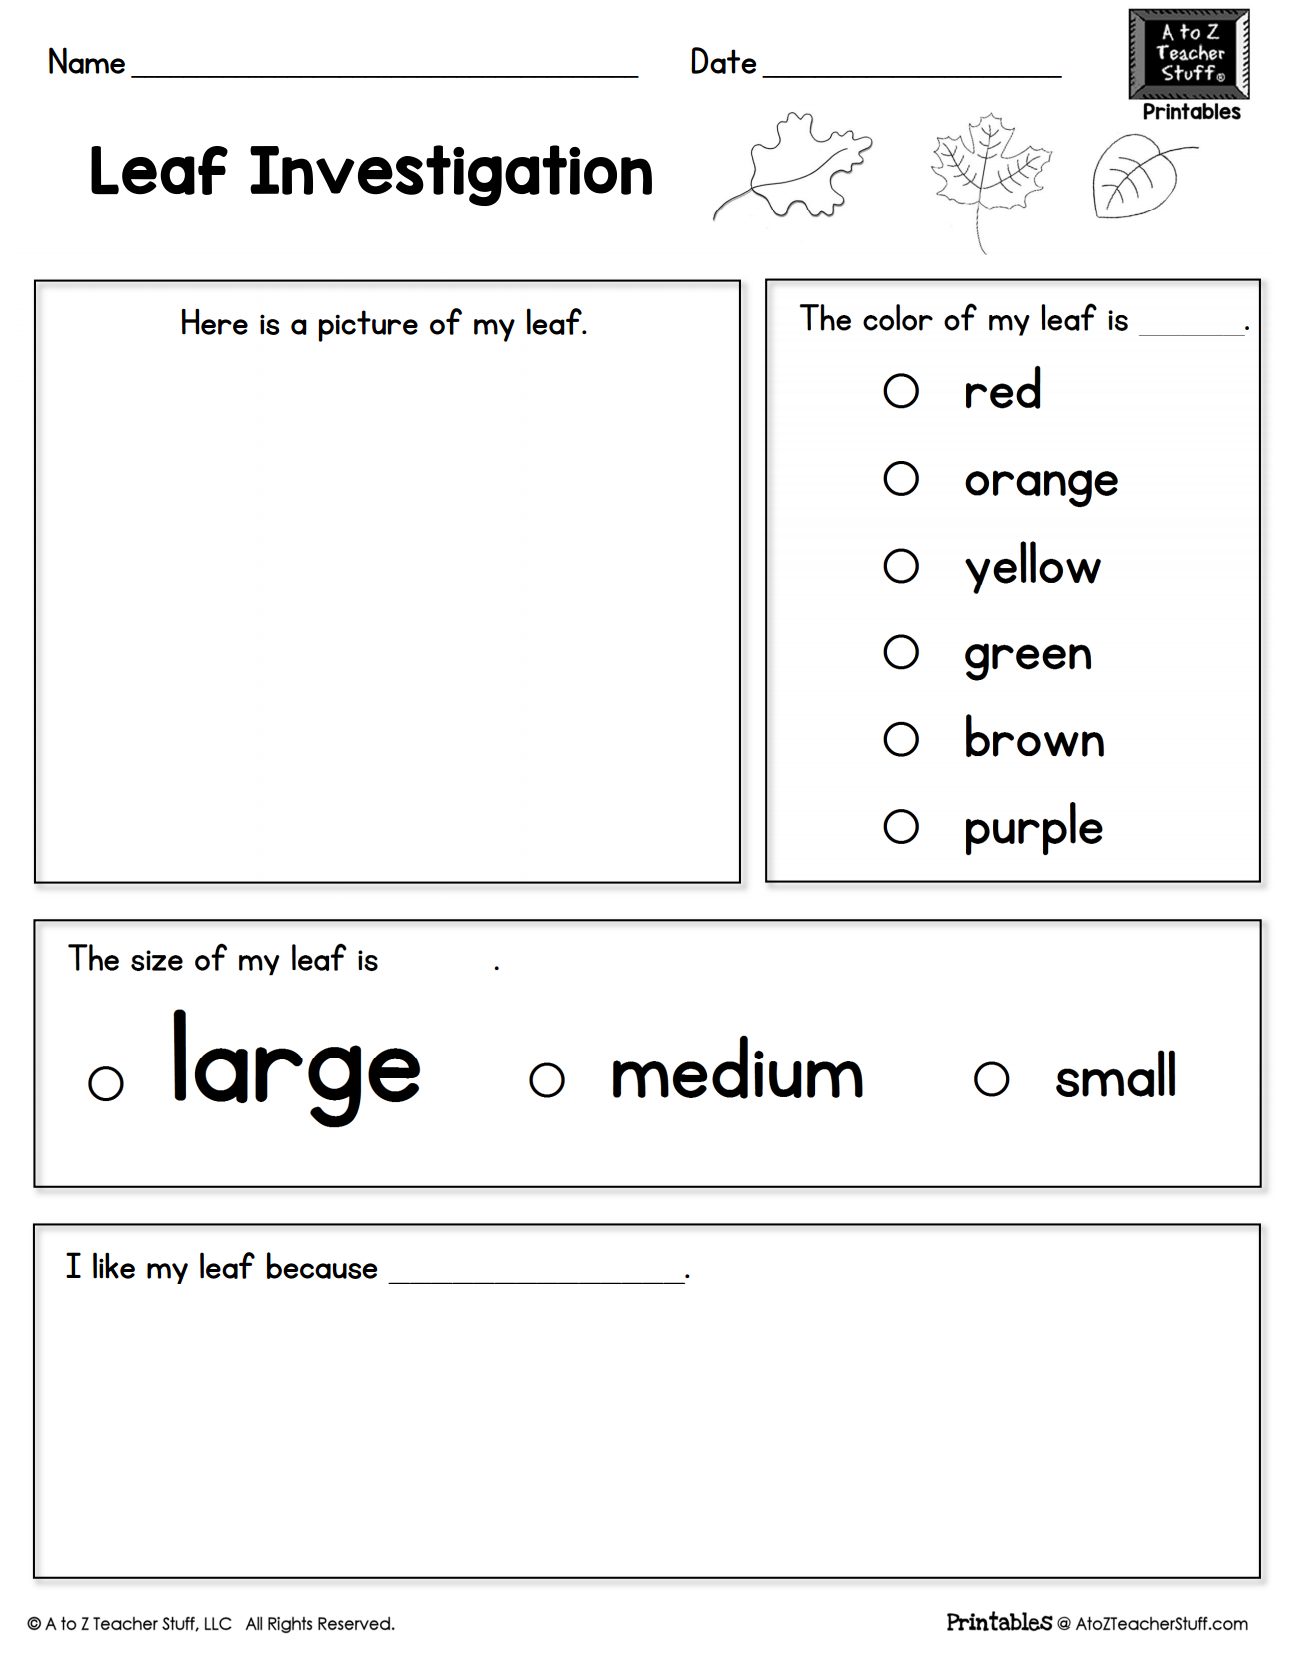 worksheet Perimeter Worksheets For 3rd Grade area and perimeter worksheets printables a to z teacher stuff leaf investigation printable worksheet